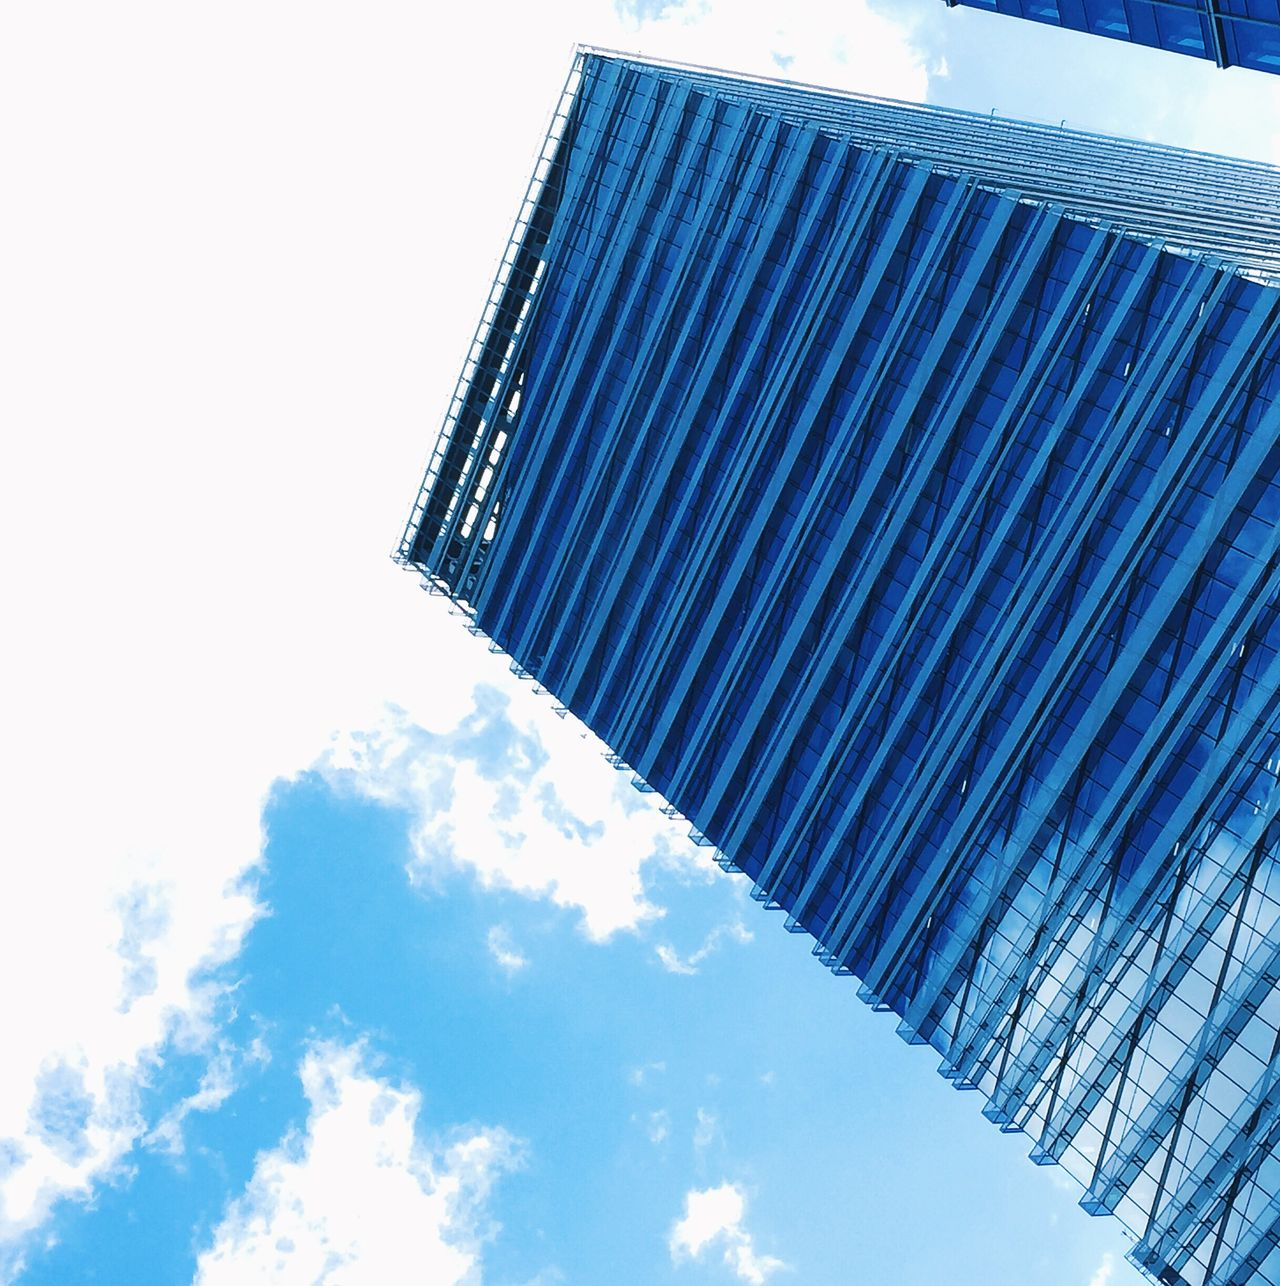 Blue Skies... 👌🏼 Low Angle View Sky Blue Architecture Building Exterior Cloud - Sky Built Structure No People Day Outdoors Skyscraper Office Block